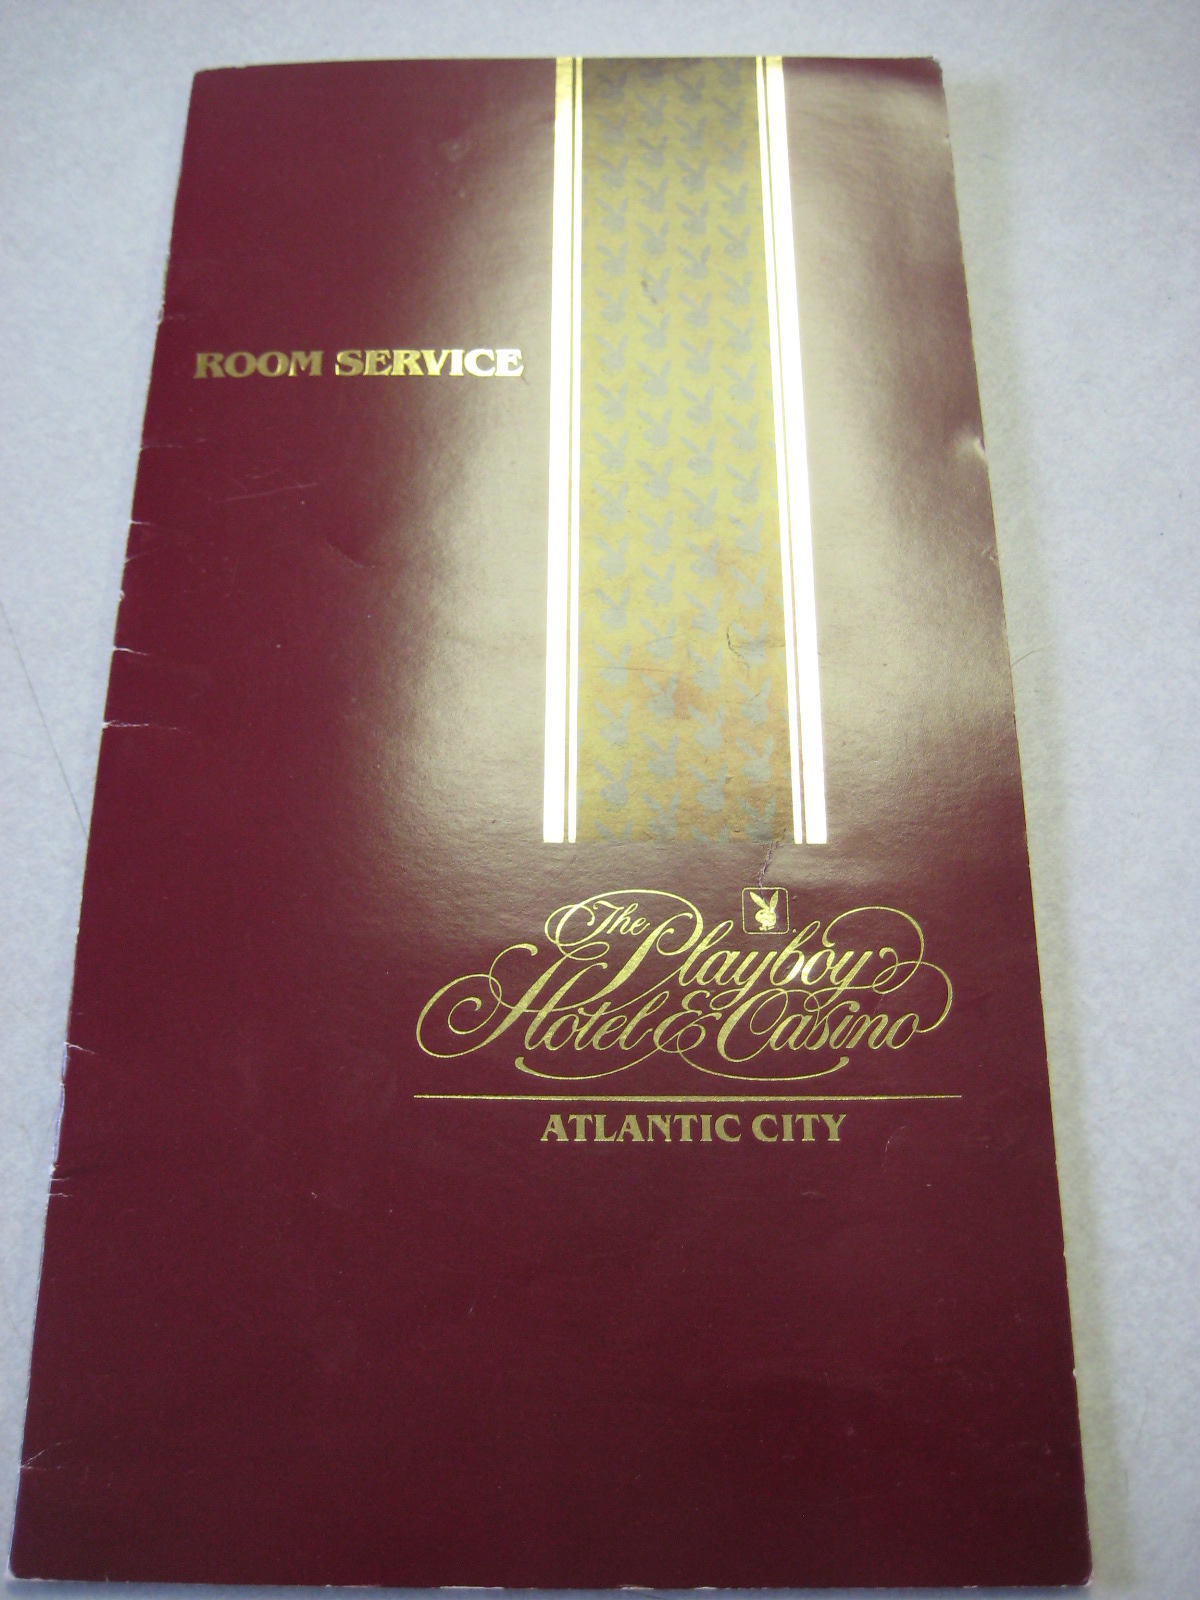 Playboy Atlantic City Room Service Menu